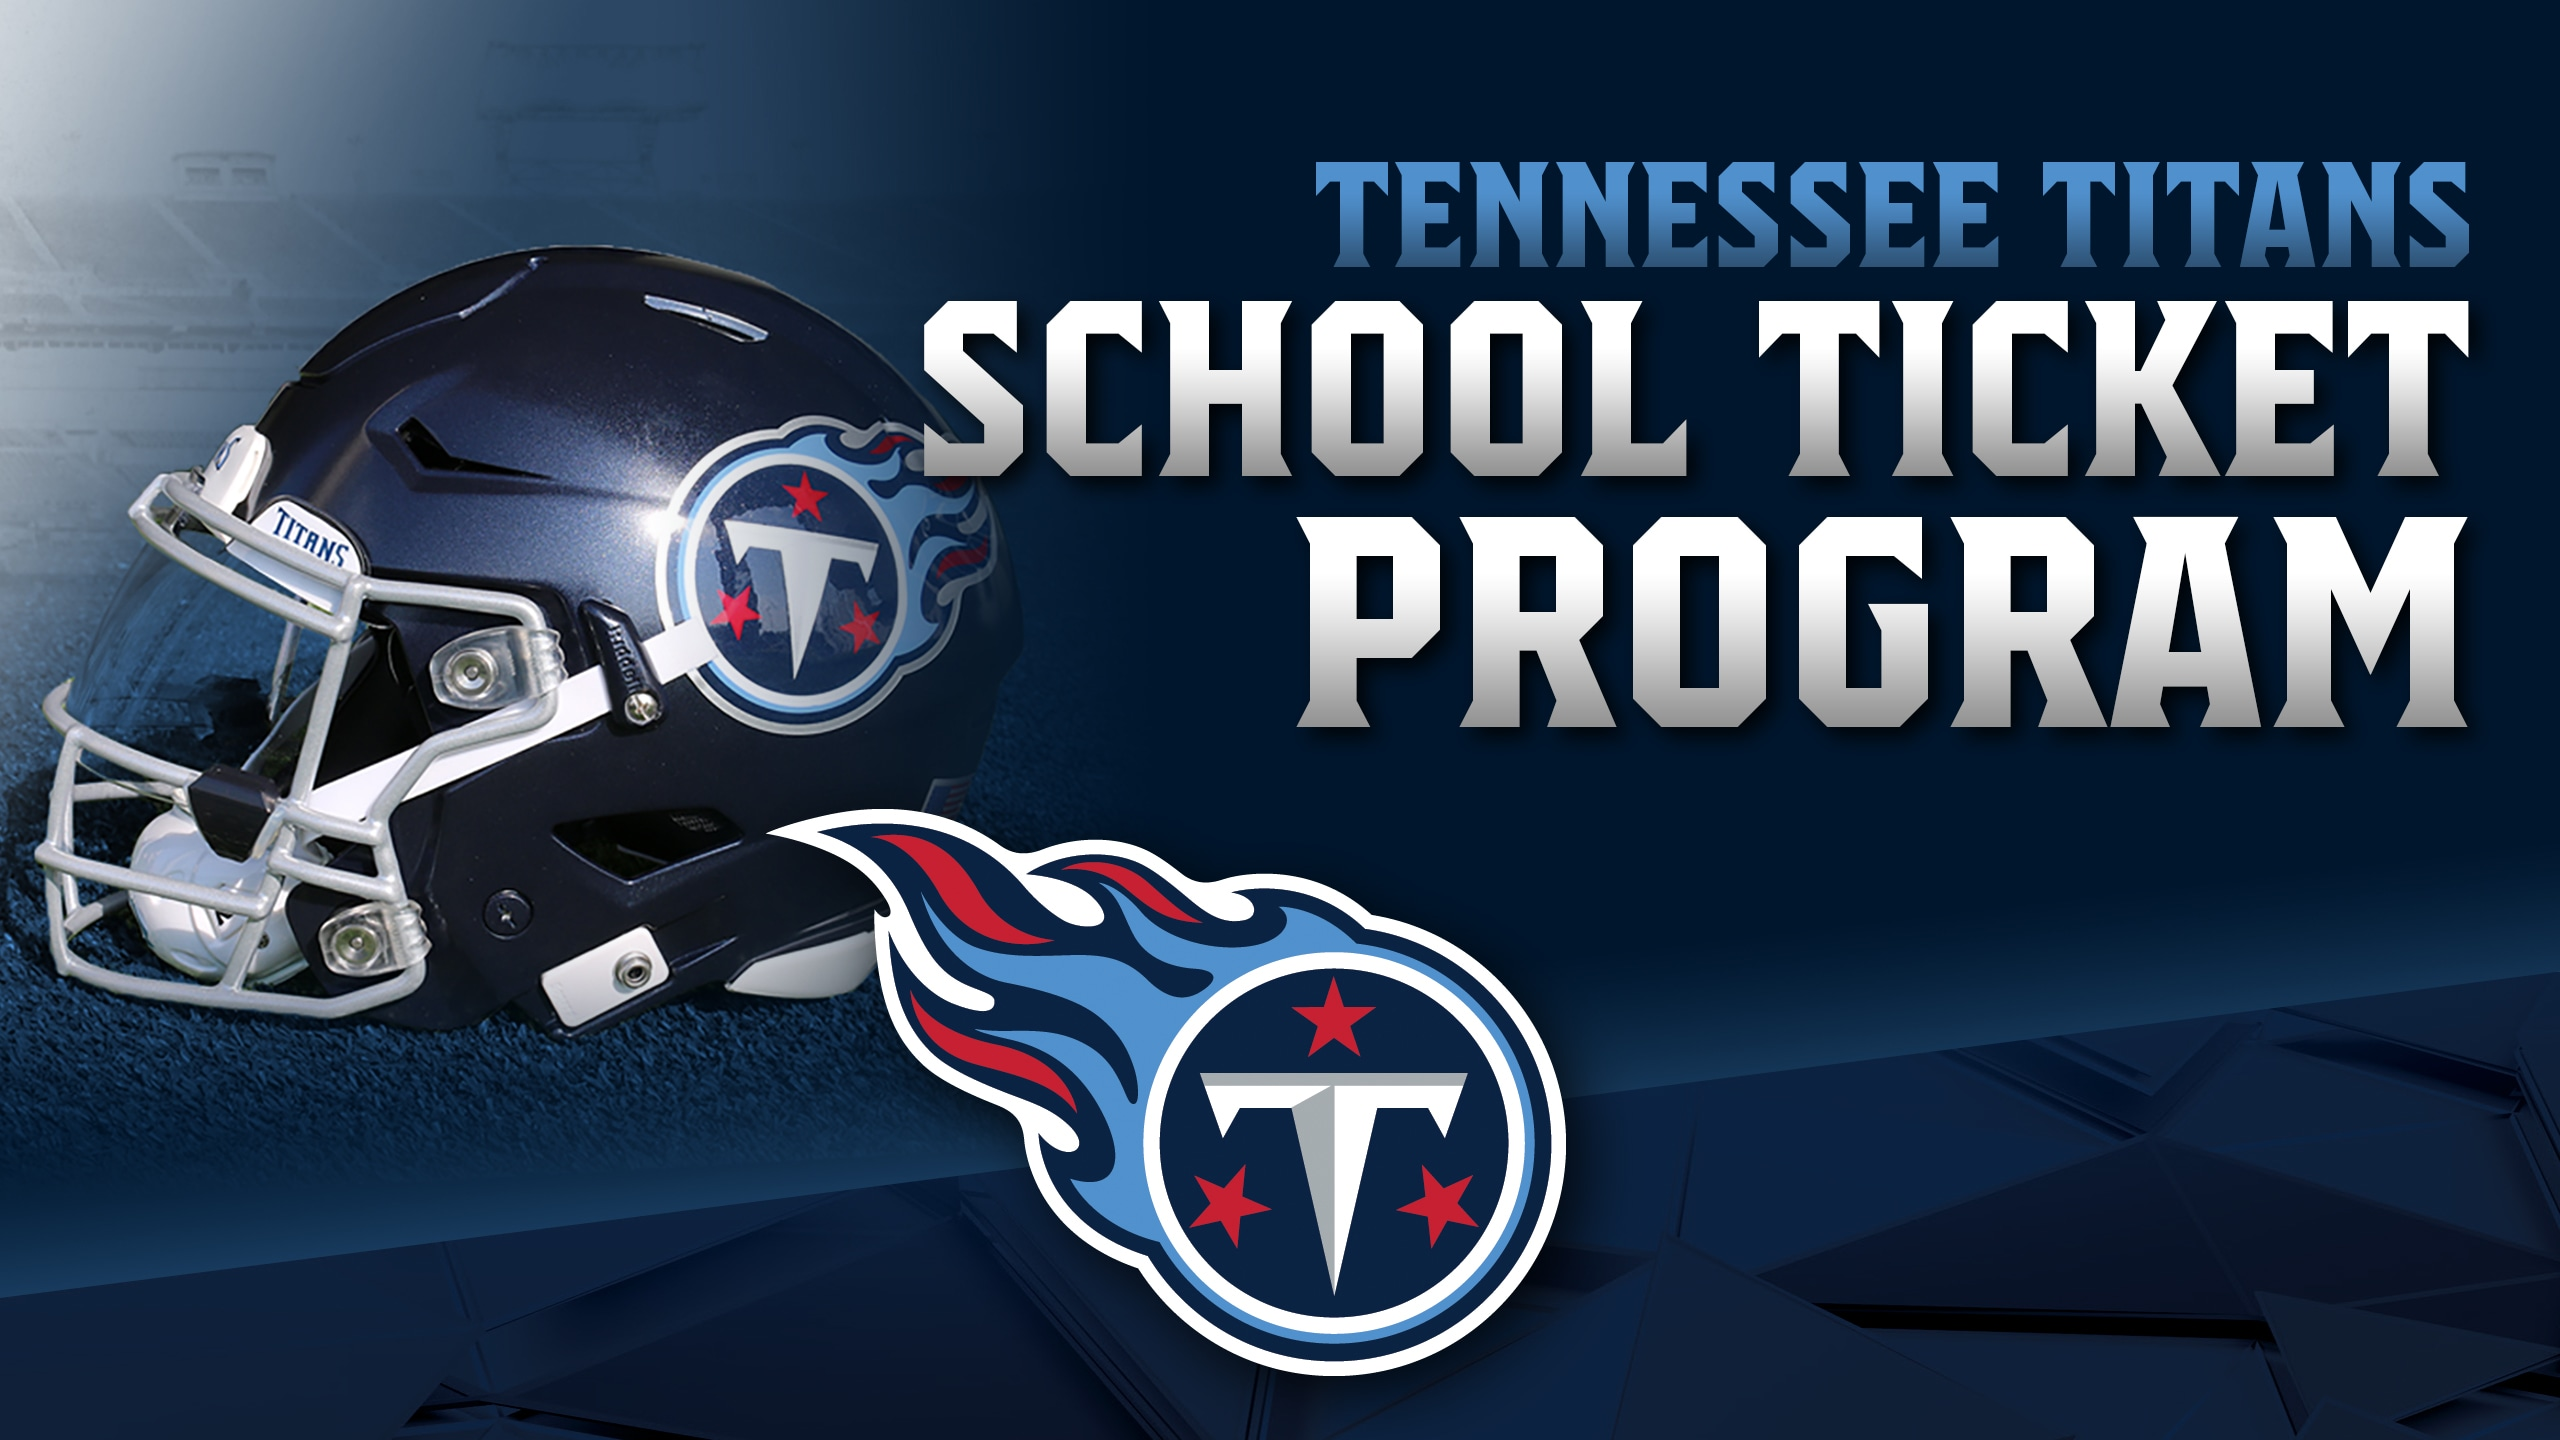 Titans School Ticket Program